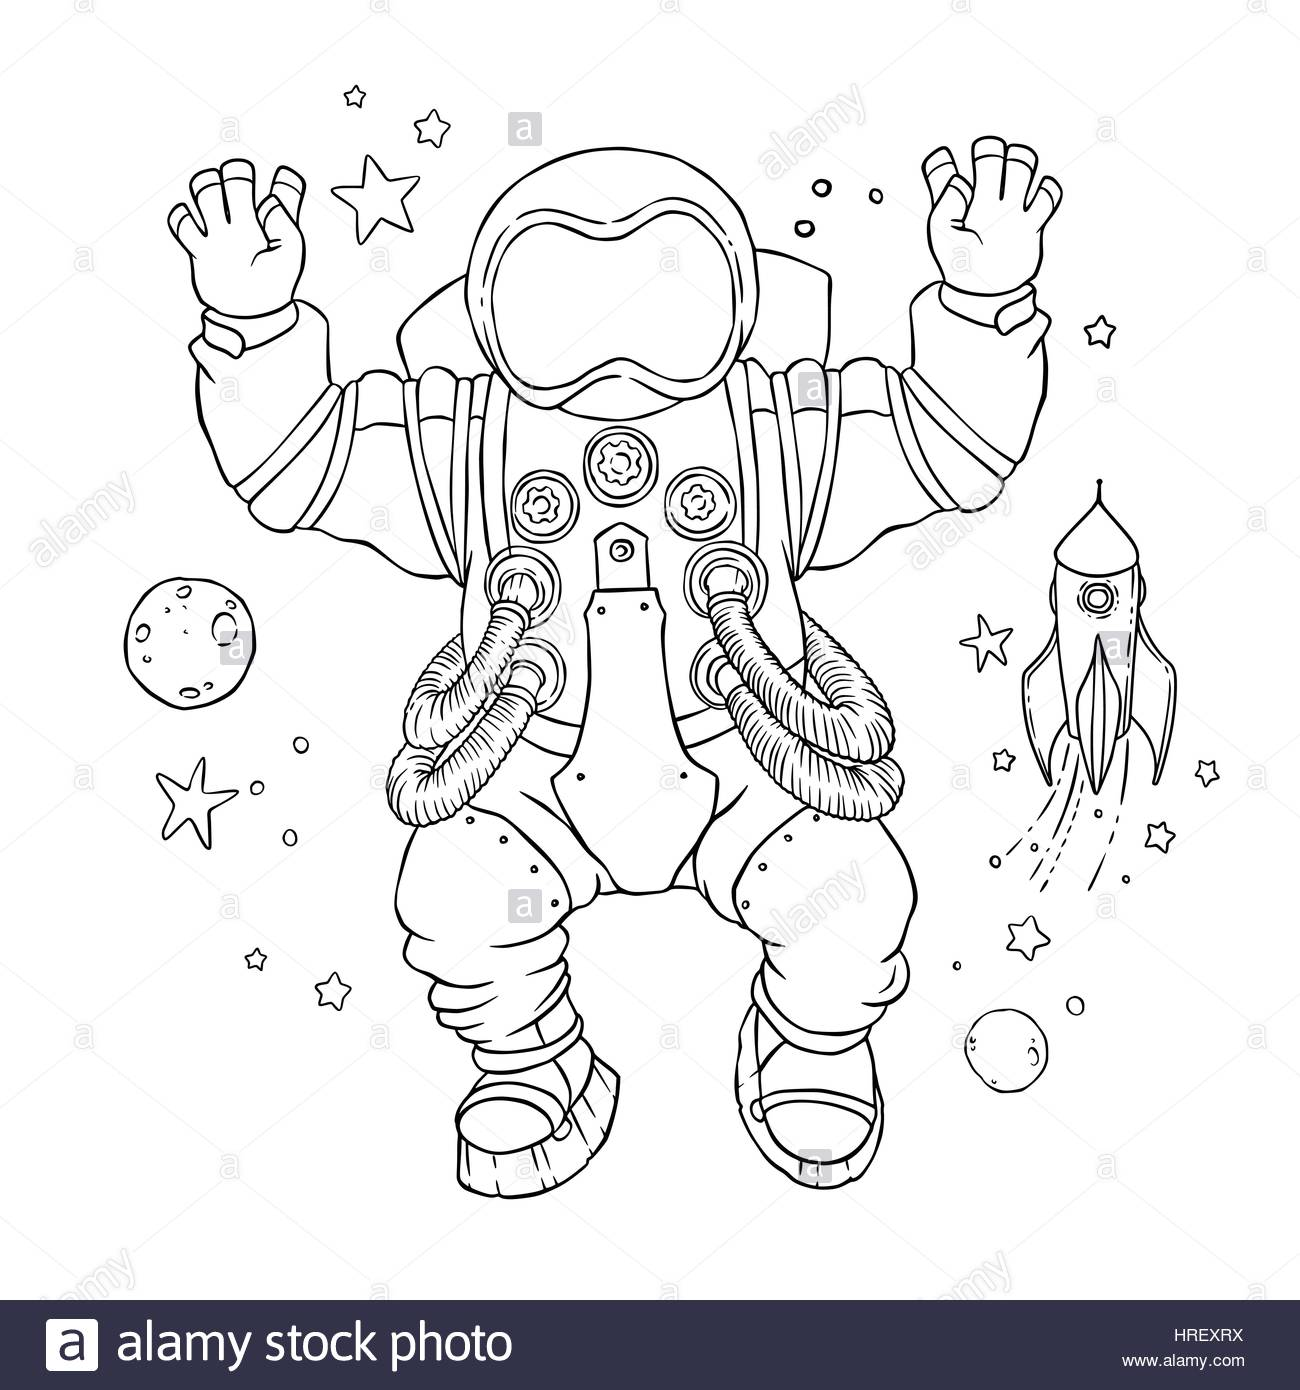 illustration of an astronaut in space suit and helmet with